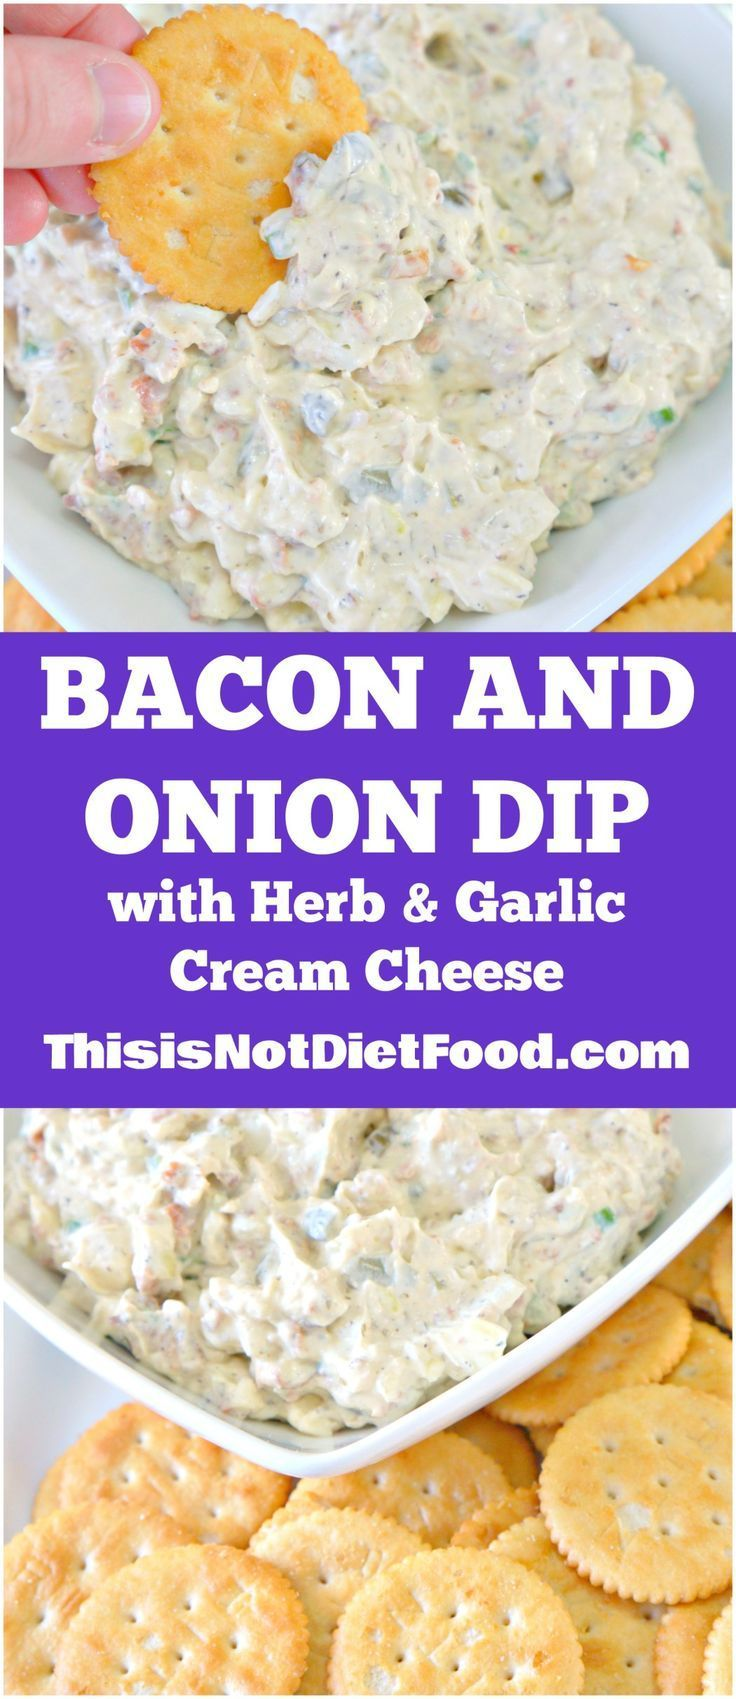 Bacon and Onion Dip made with Herb and Garlic Cream Cheese. Easy cold party dip for crackers or chips. Perfect Party Dip.